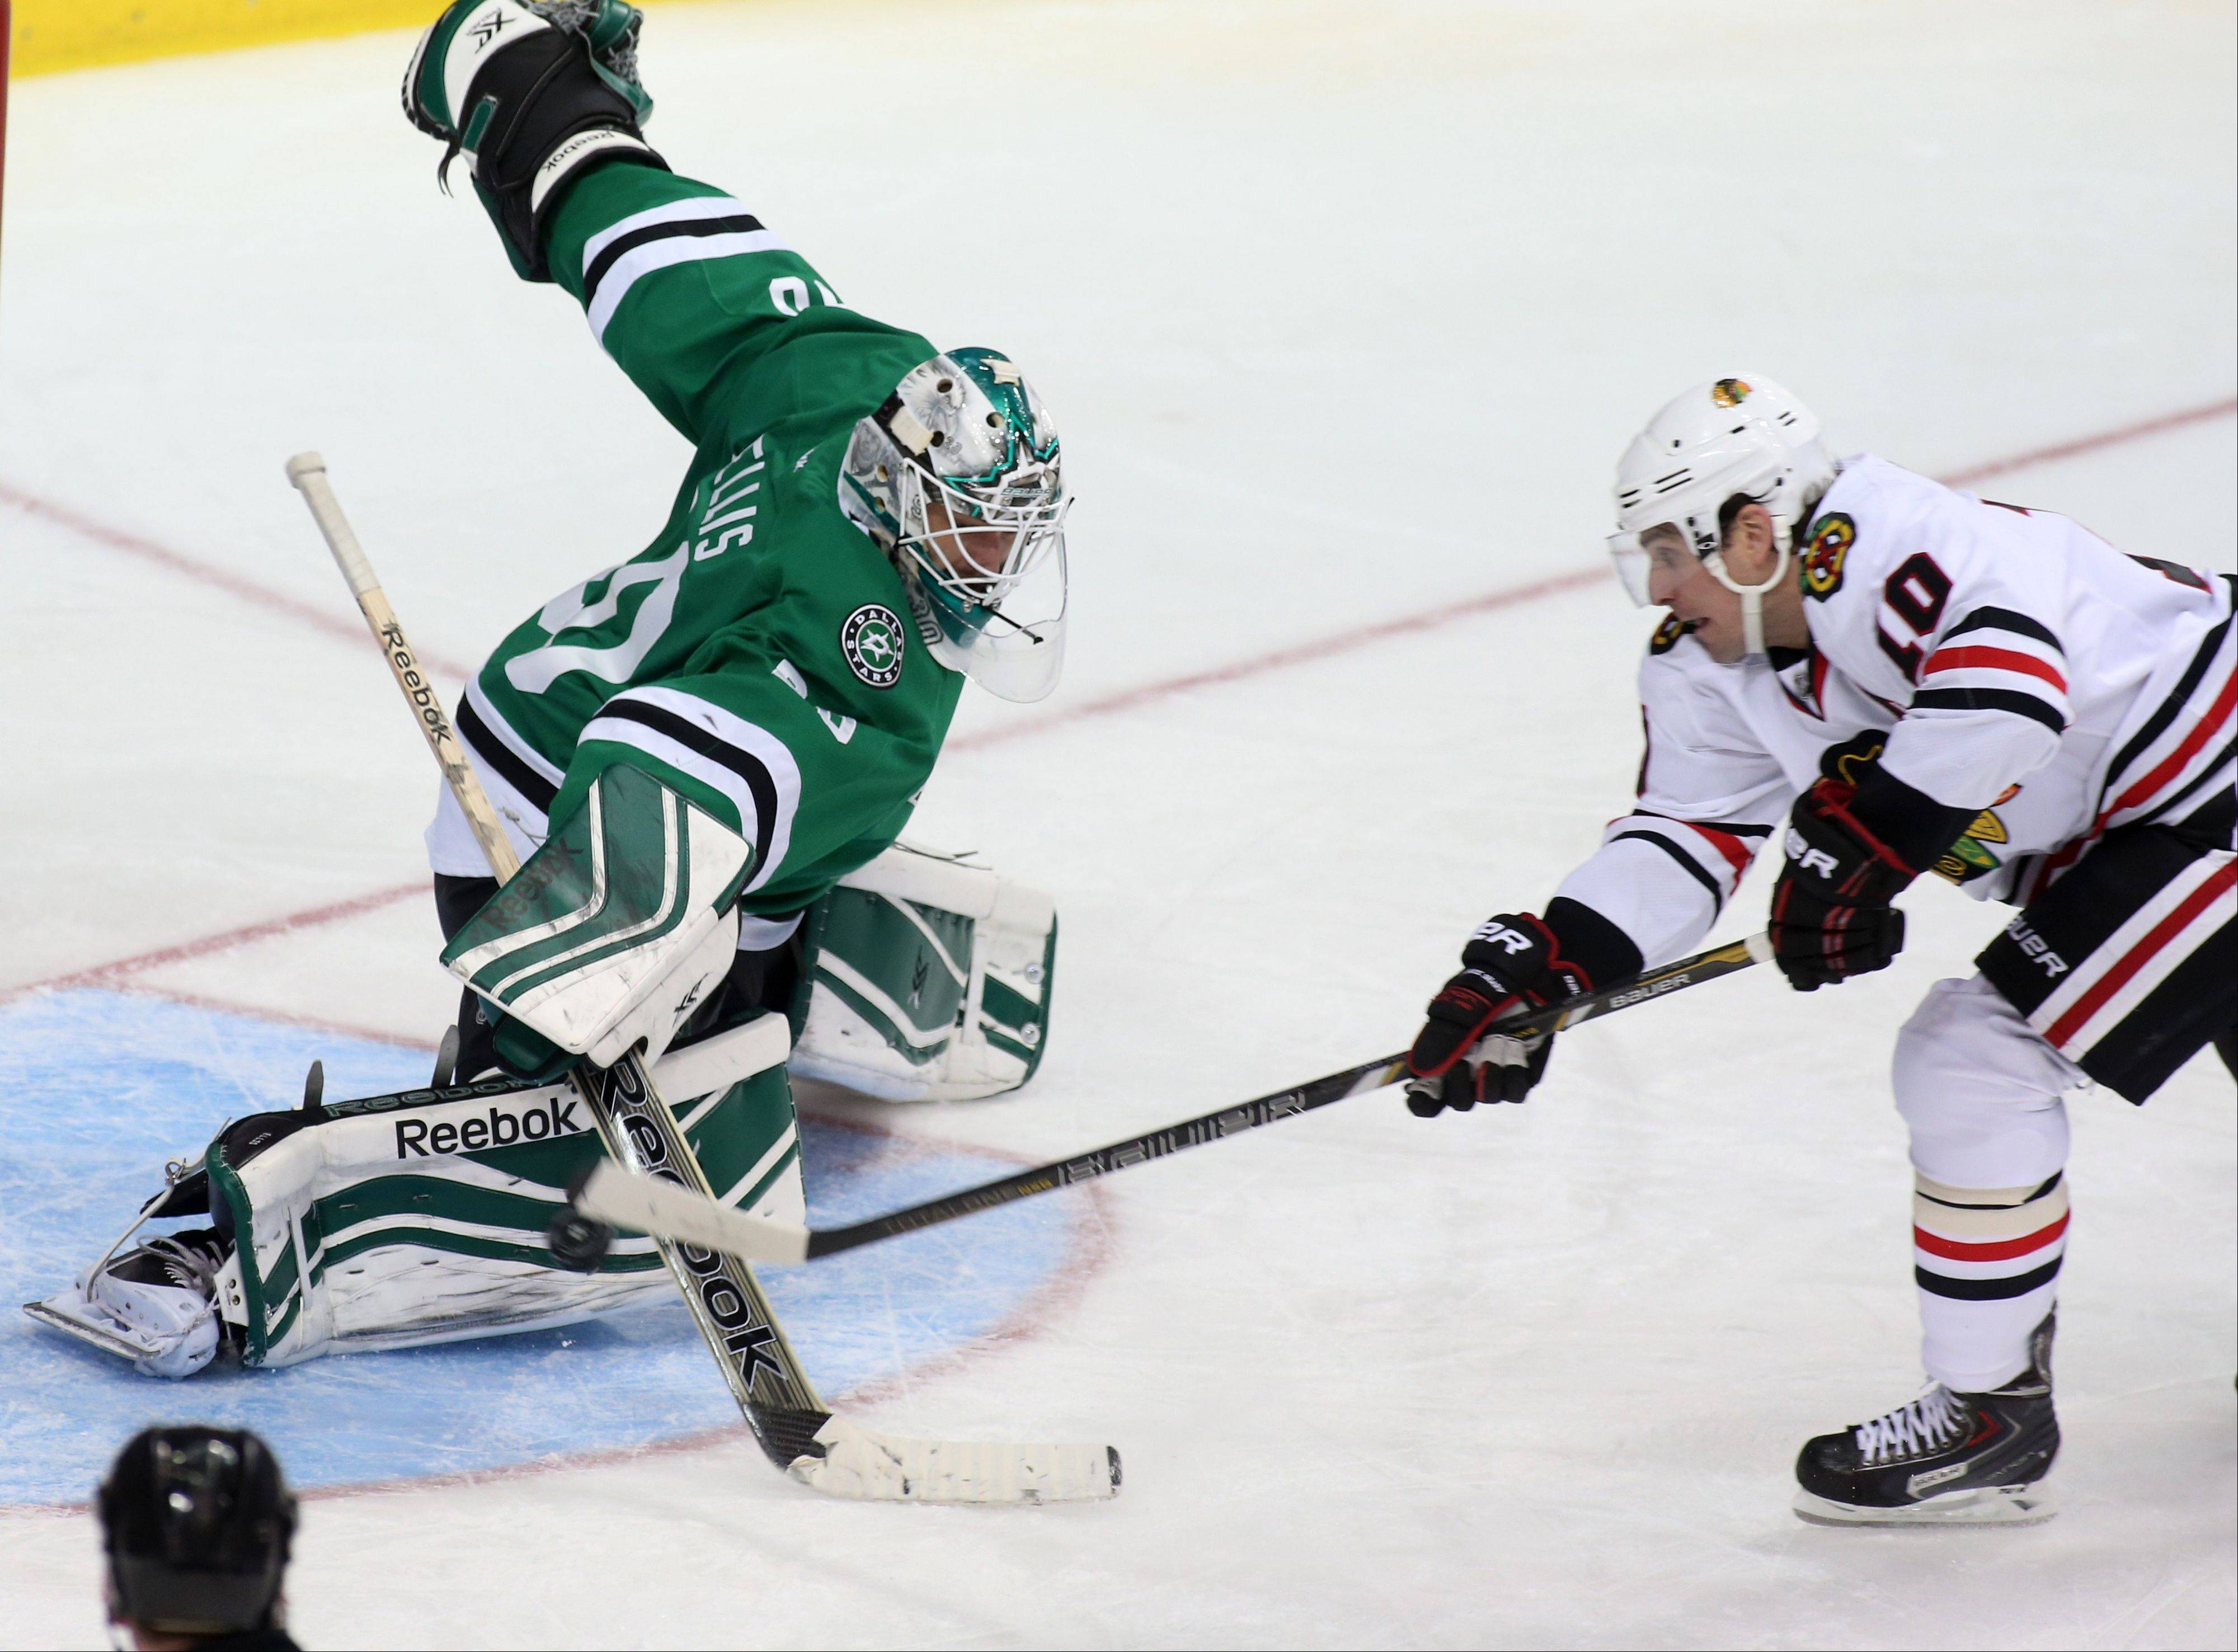 Dallas Stars goalie Dan Ellis (30) gives up a goal to Chicago Blackhawks left wing Patrick Sharp (10) Tuesday night in Dallas. The Blackhawks defeated the Stars 6-2.